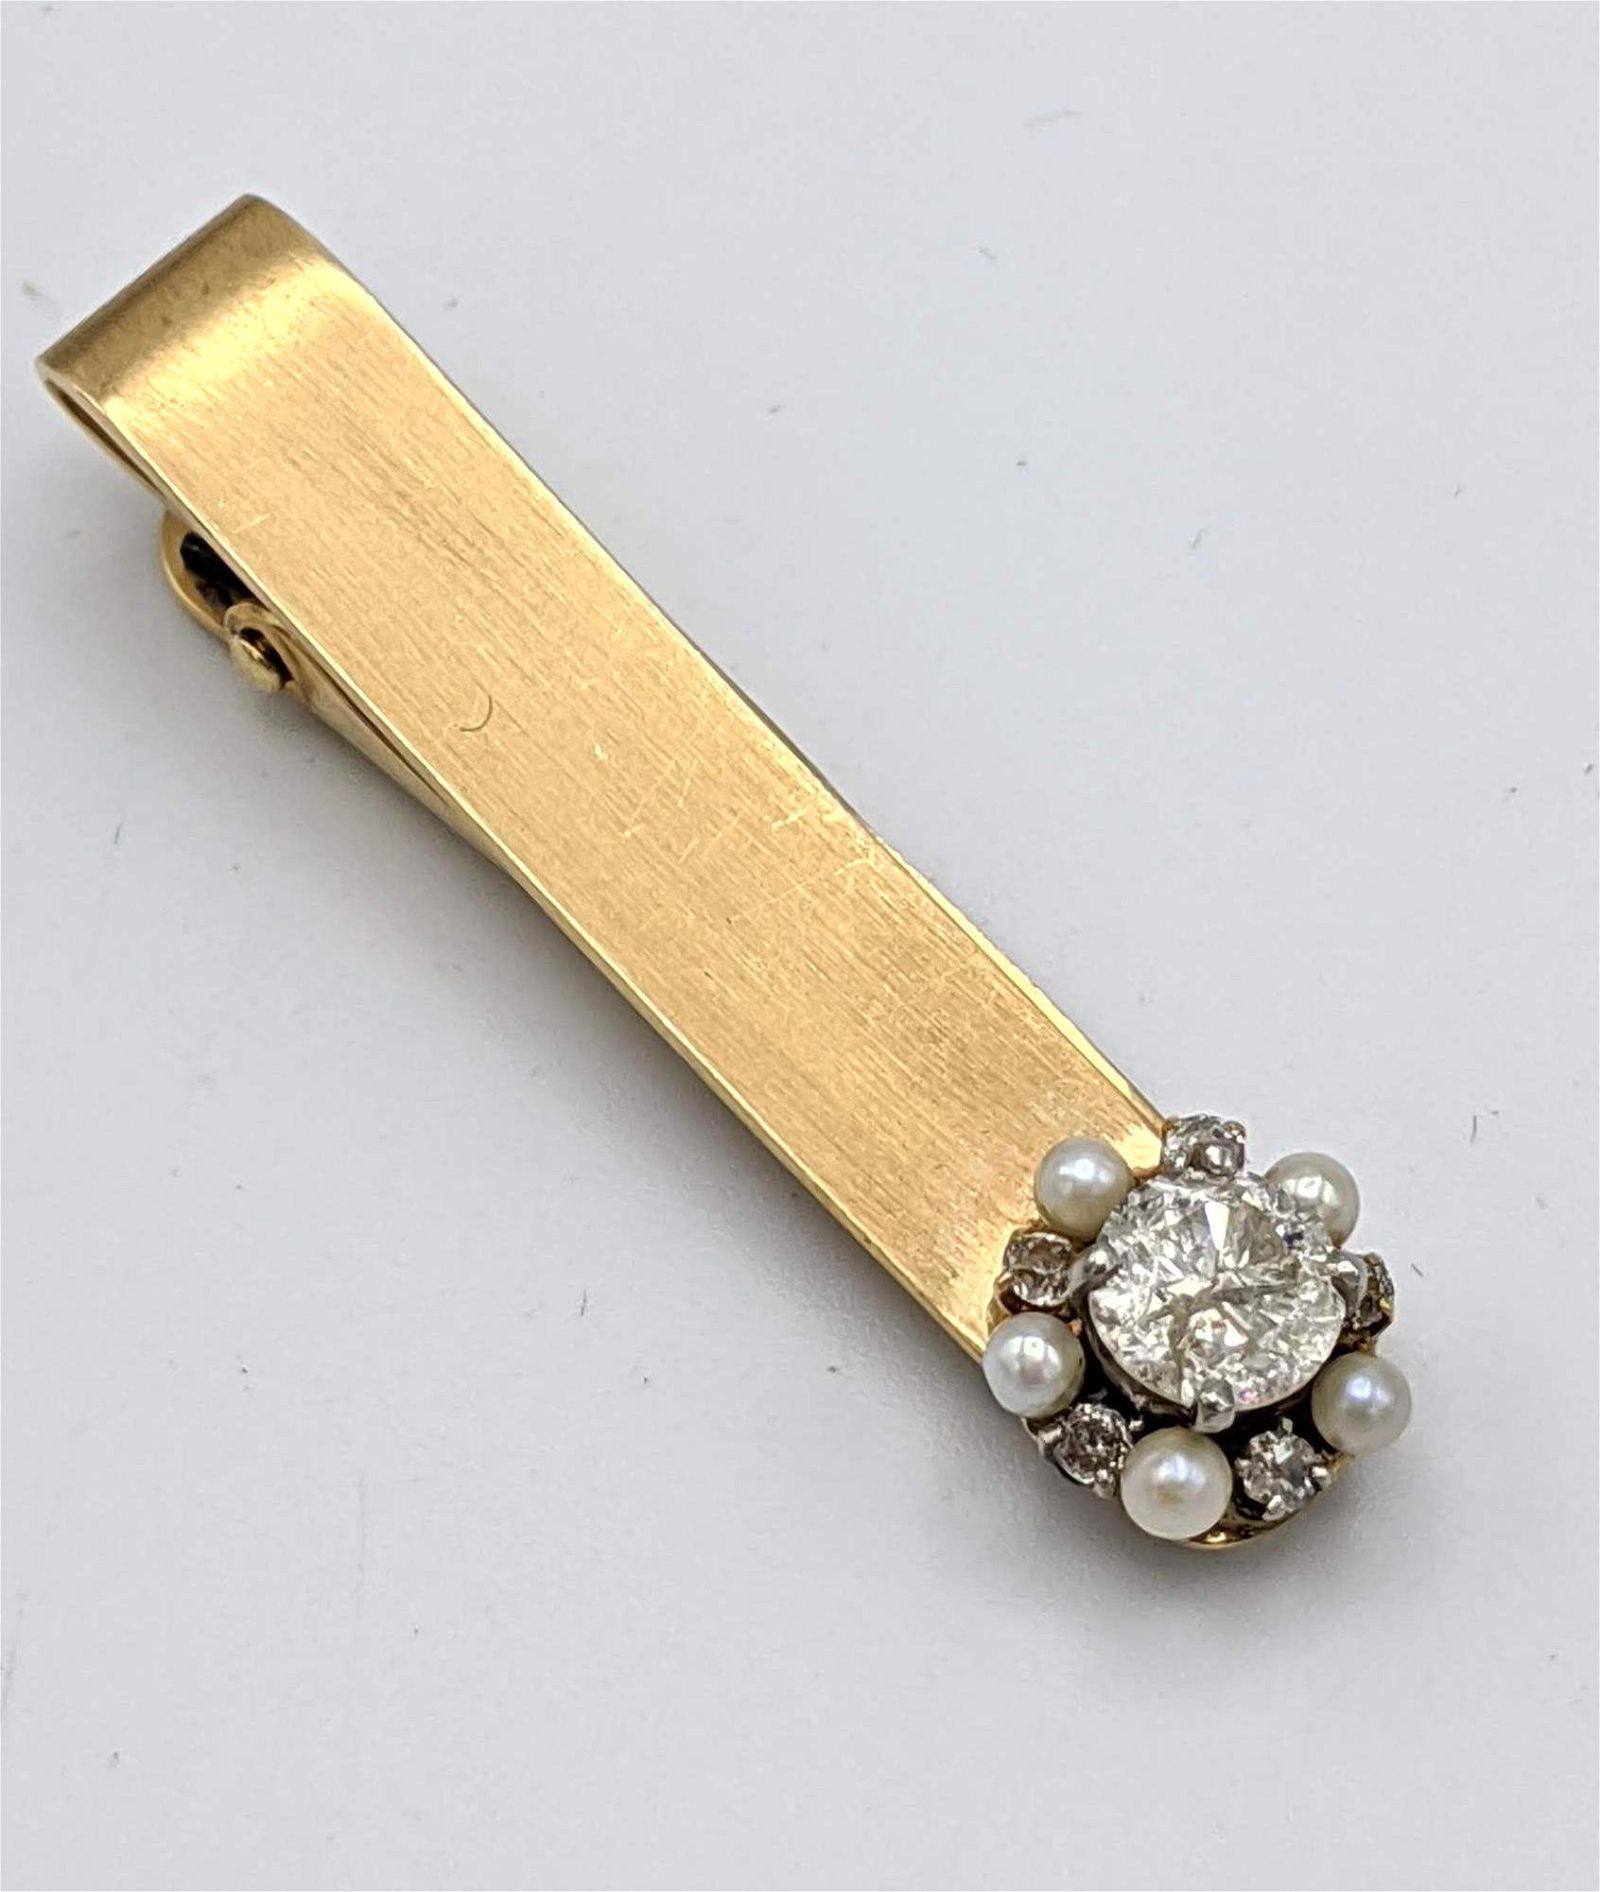 14k Gold Diamond Vintage Tie Bar Clip.  Approx .5 carat